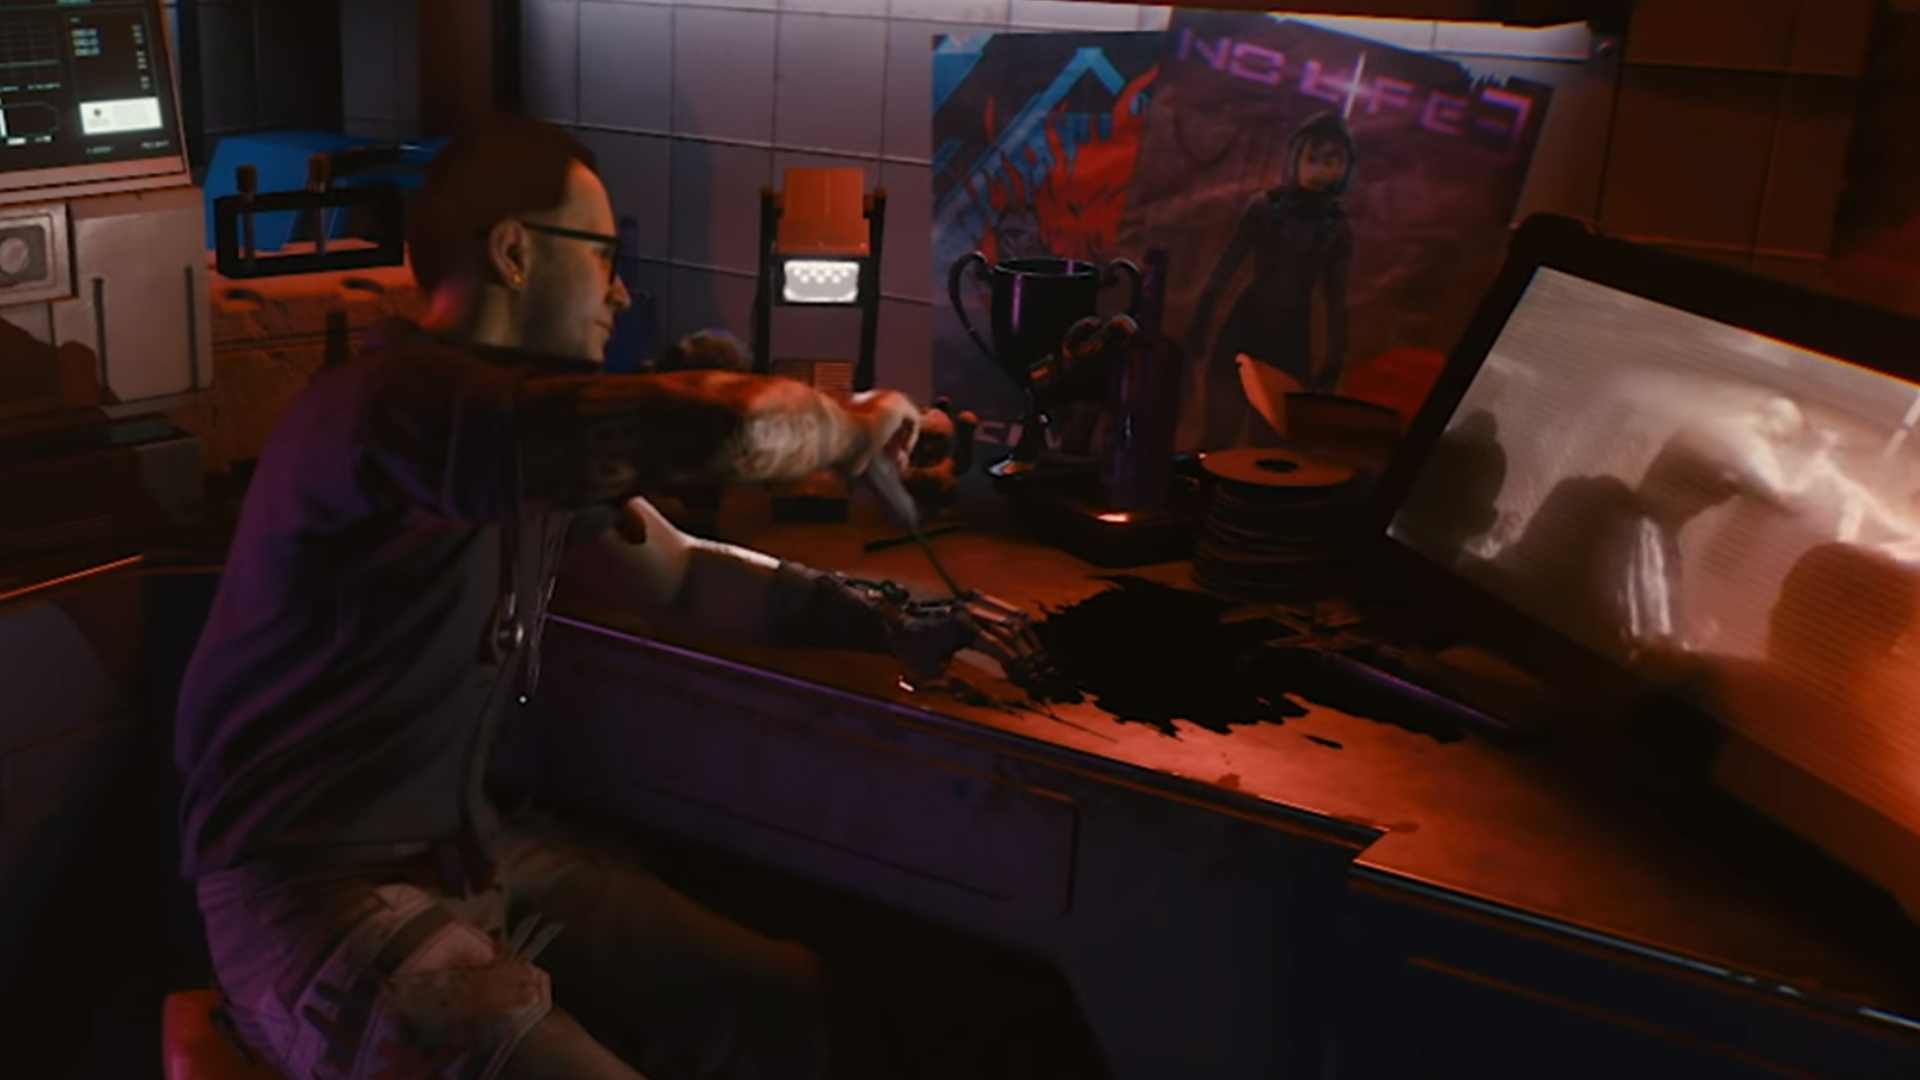 Cyberpunk 2077 Contains A Subtle Dig At Valve And Half